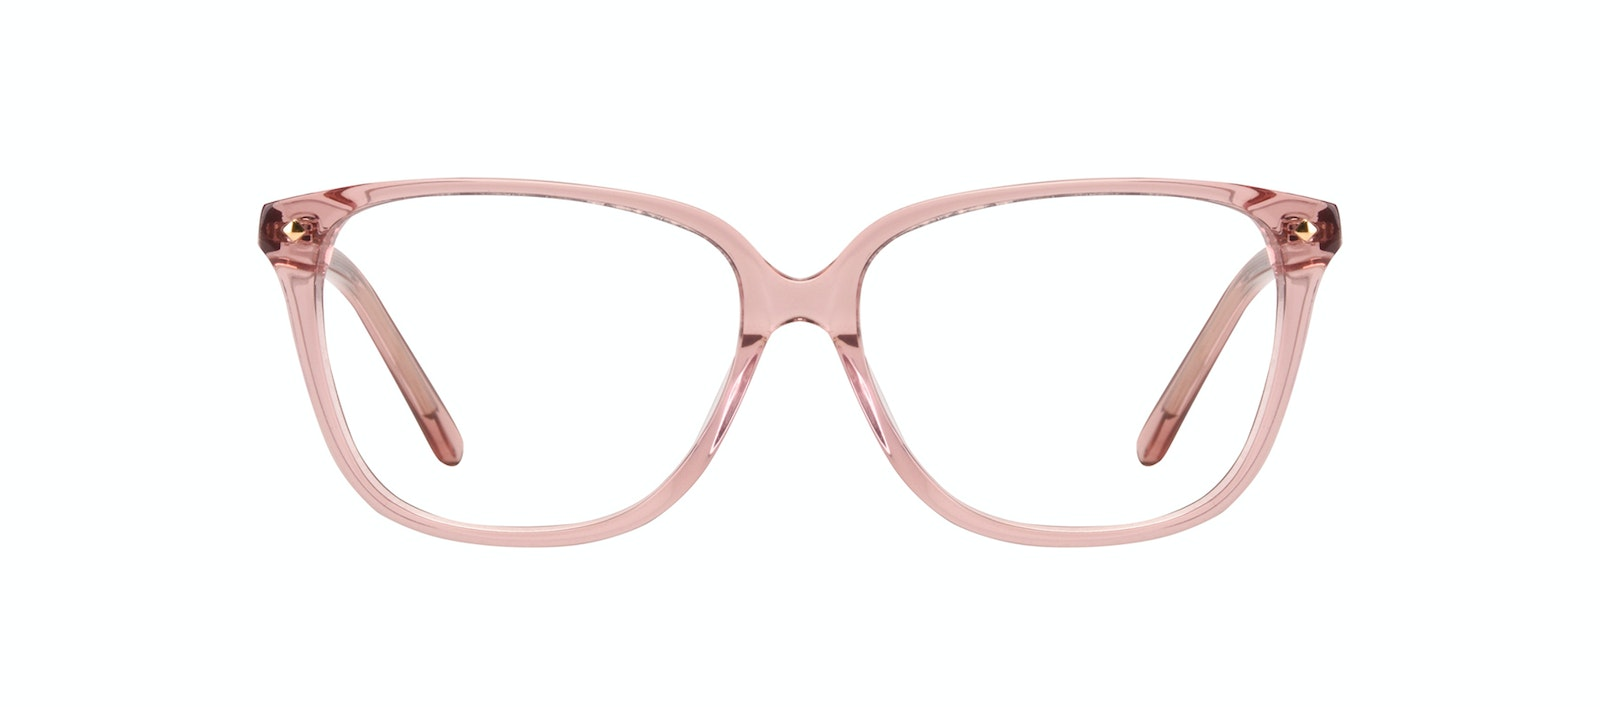 Affordable Fashion Glasses Rectangle Square Eyeglasses Women Muse Rose Front